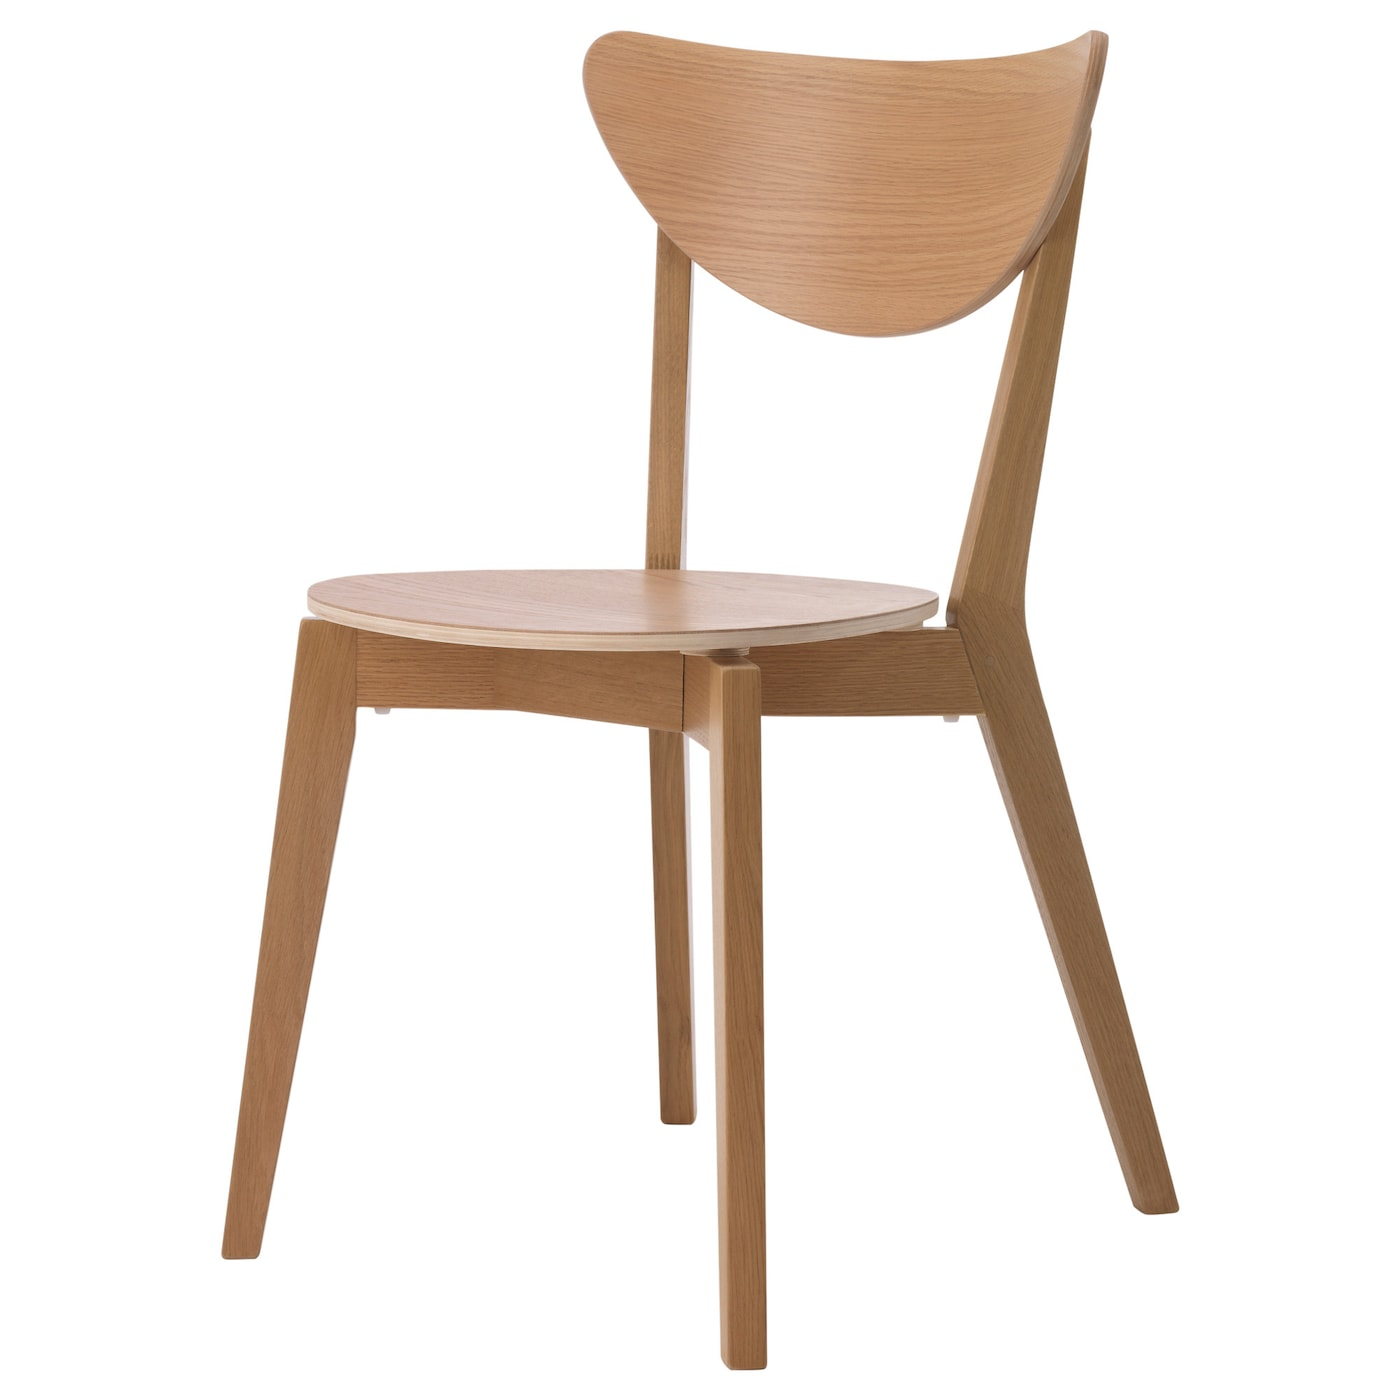 oak dining chair chairs upholstered amp foldable dining chairs ikea 1133